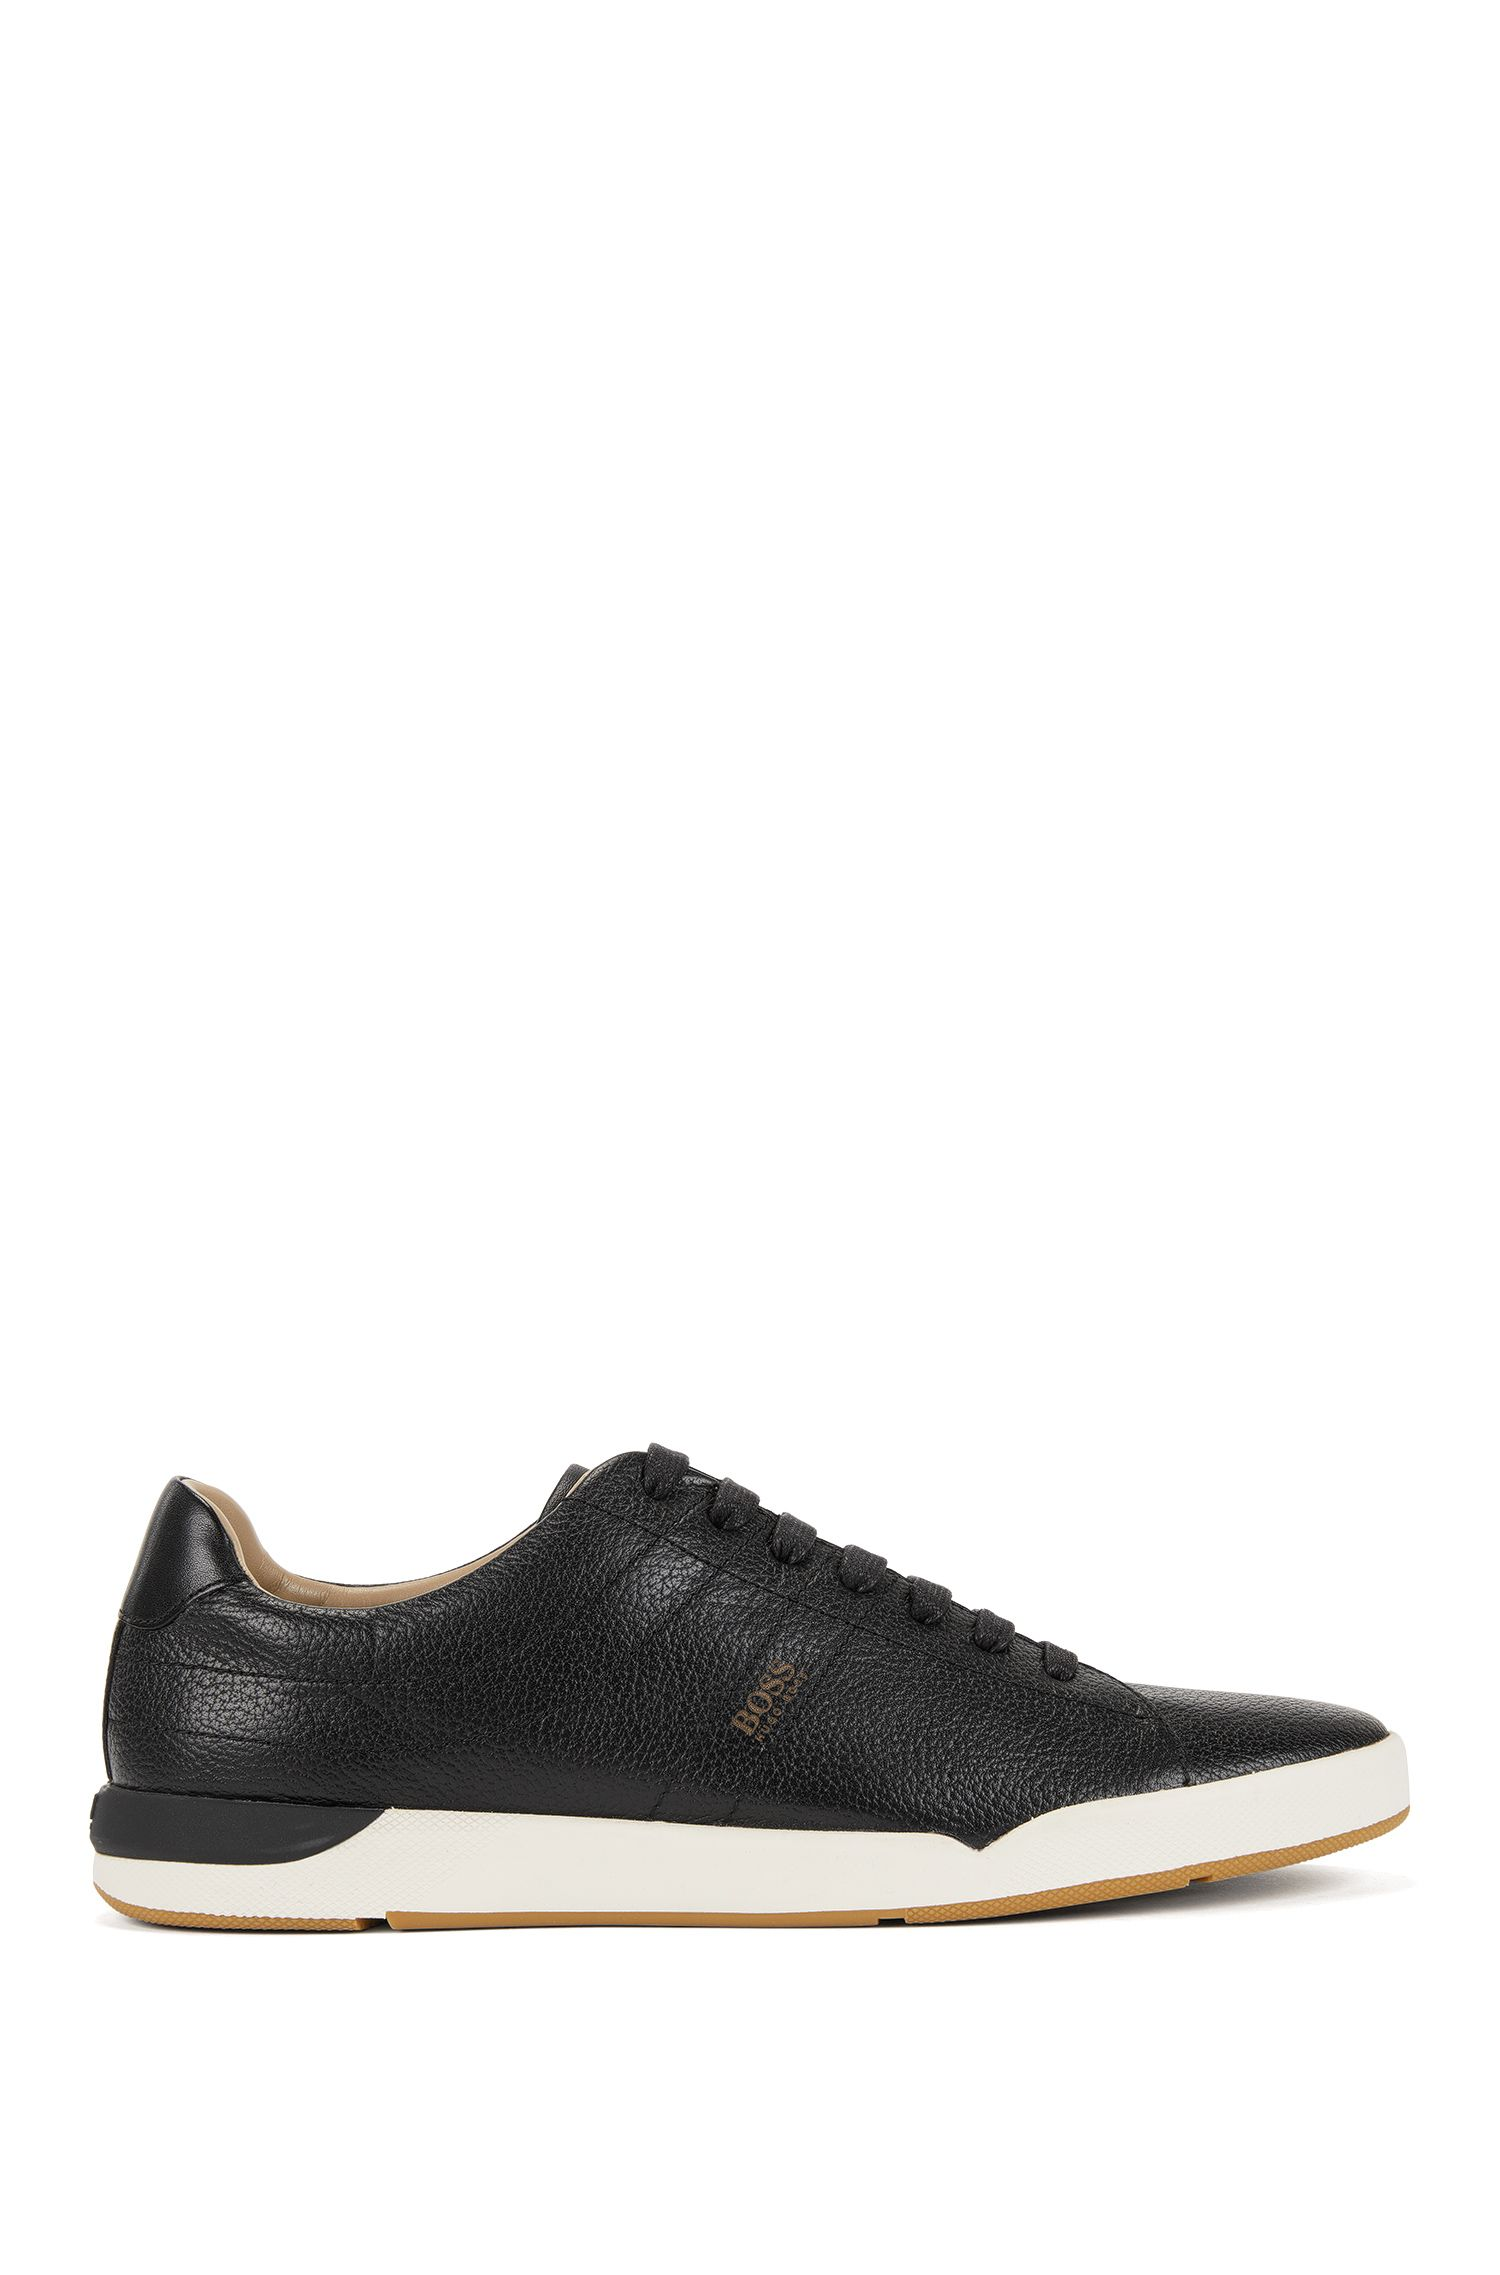 Low-top trainers in grained leather